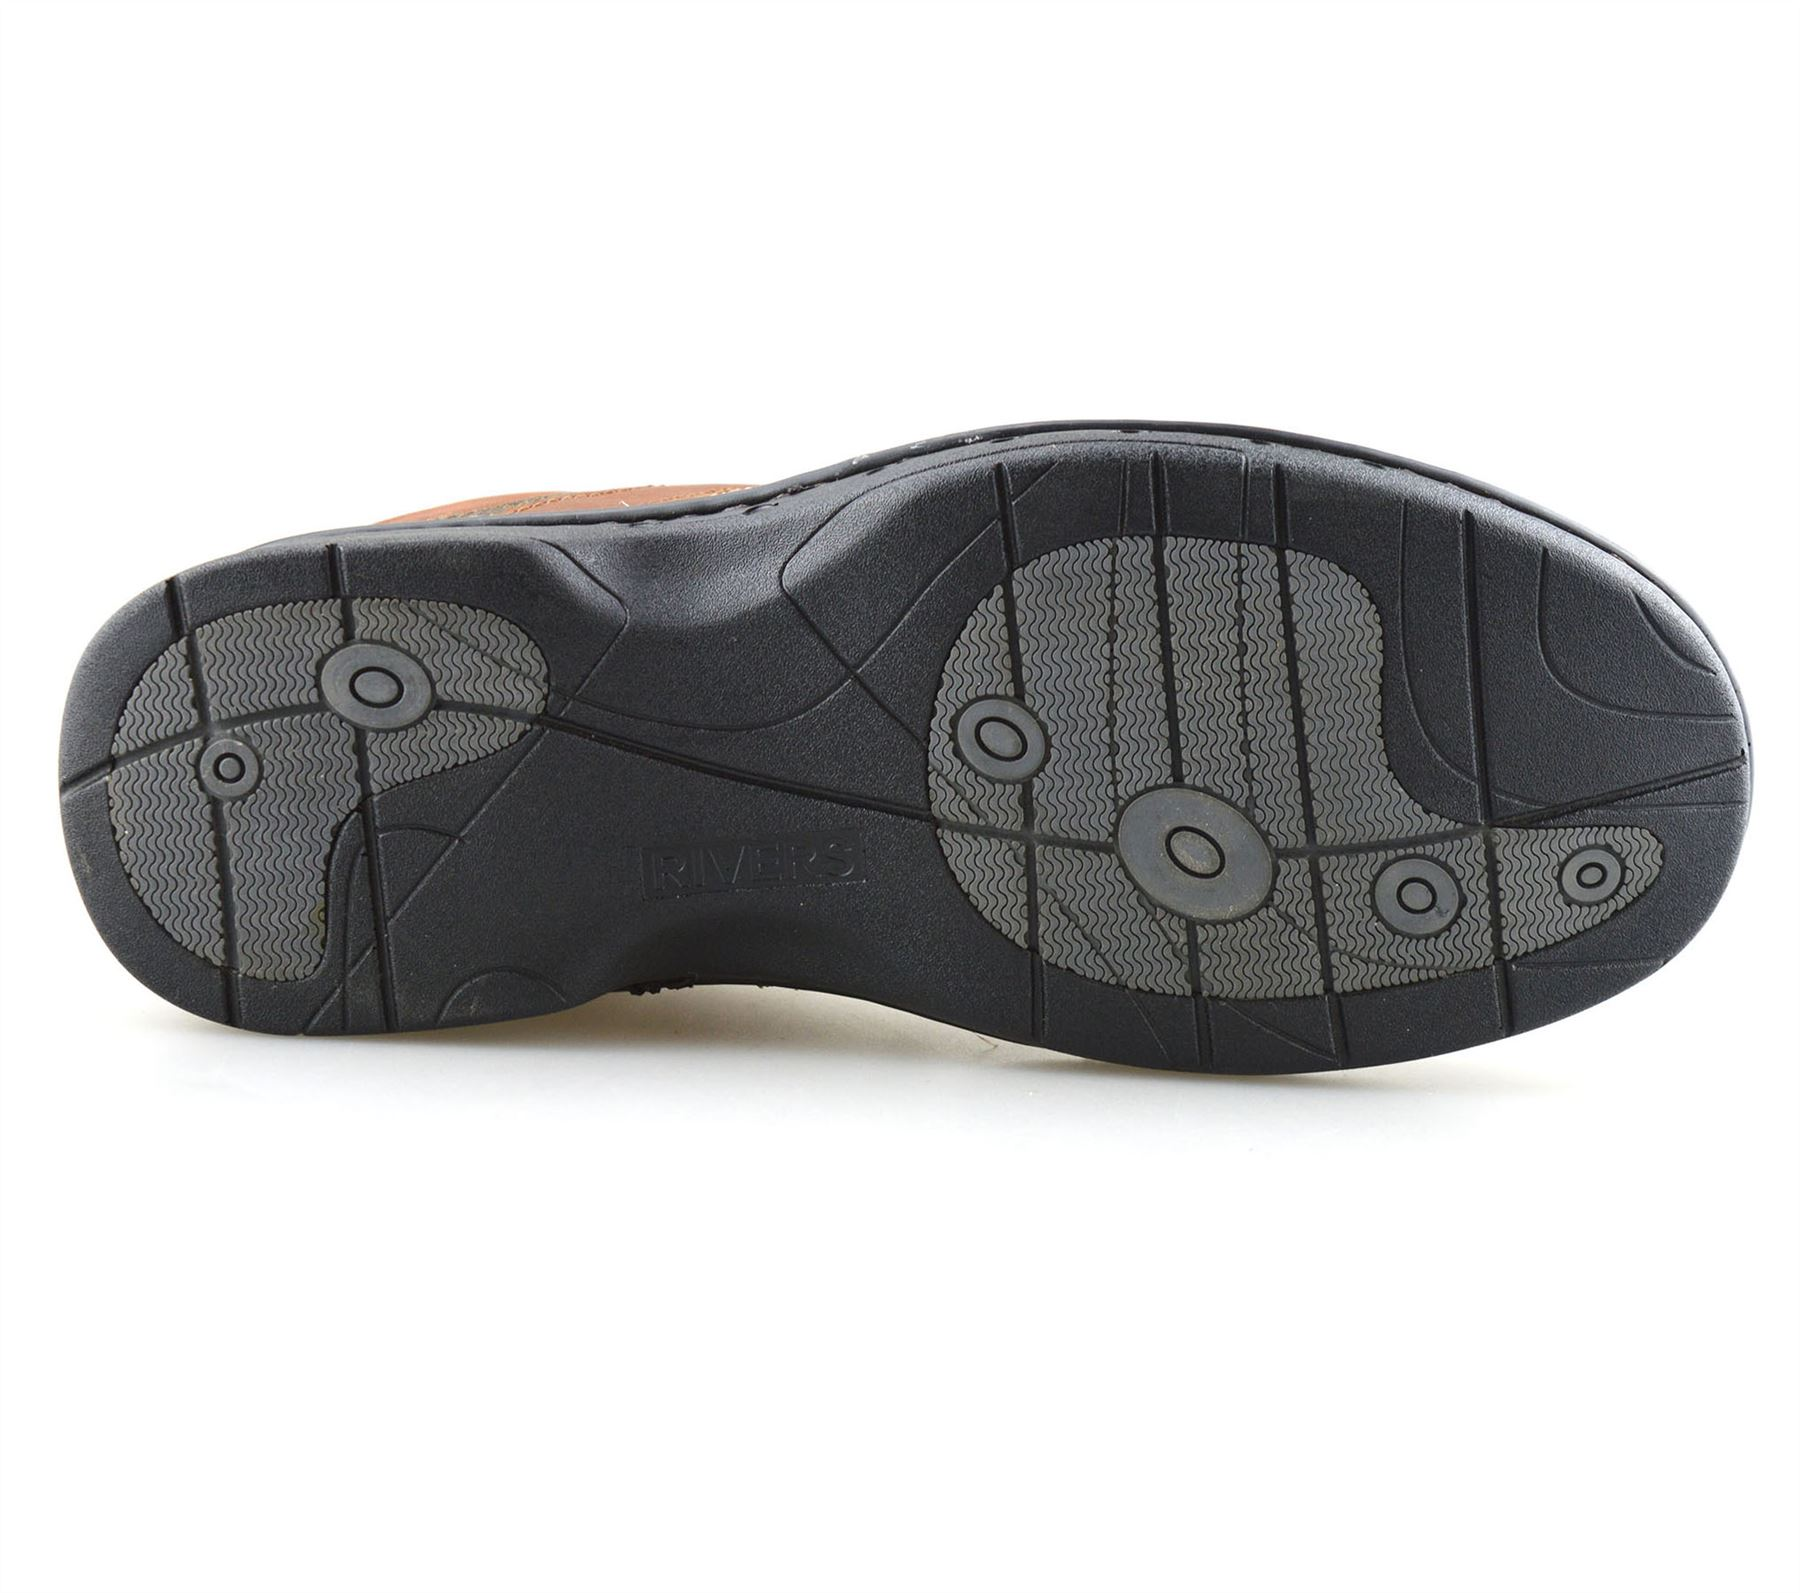 Mens-Leather-Casual-Smart-Lace-Up-Walking-Work-Moccasin-Driving-Boat-Shoes-Size thumbnail 11